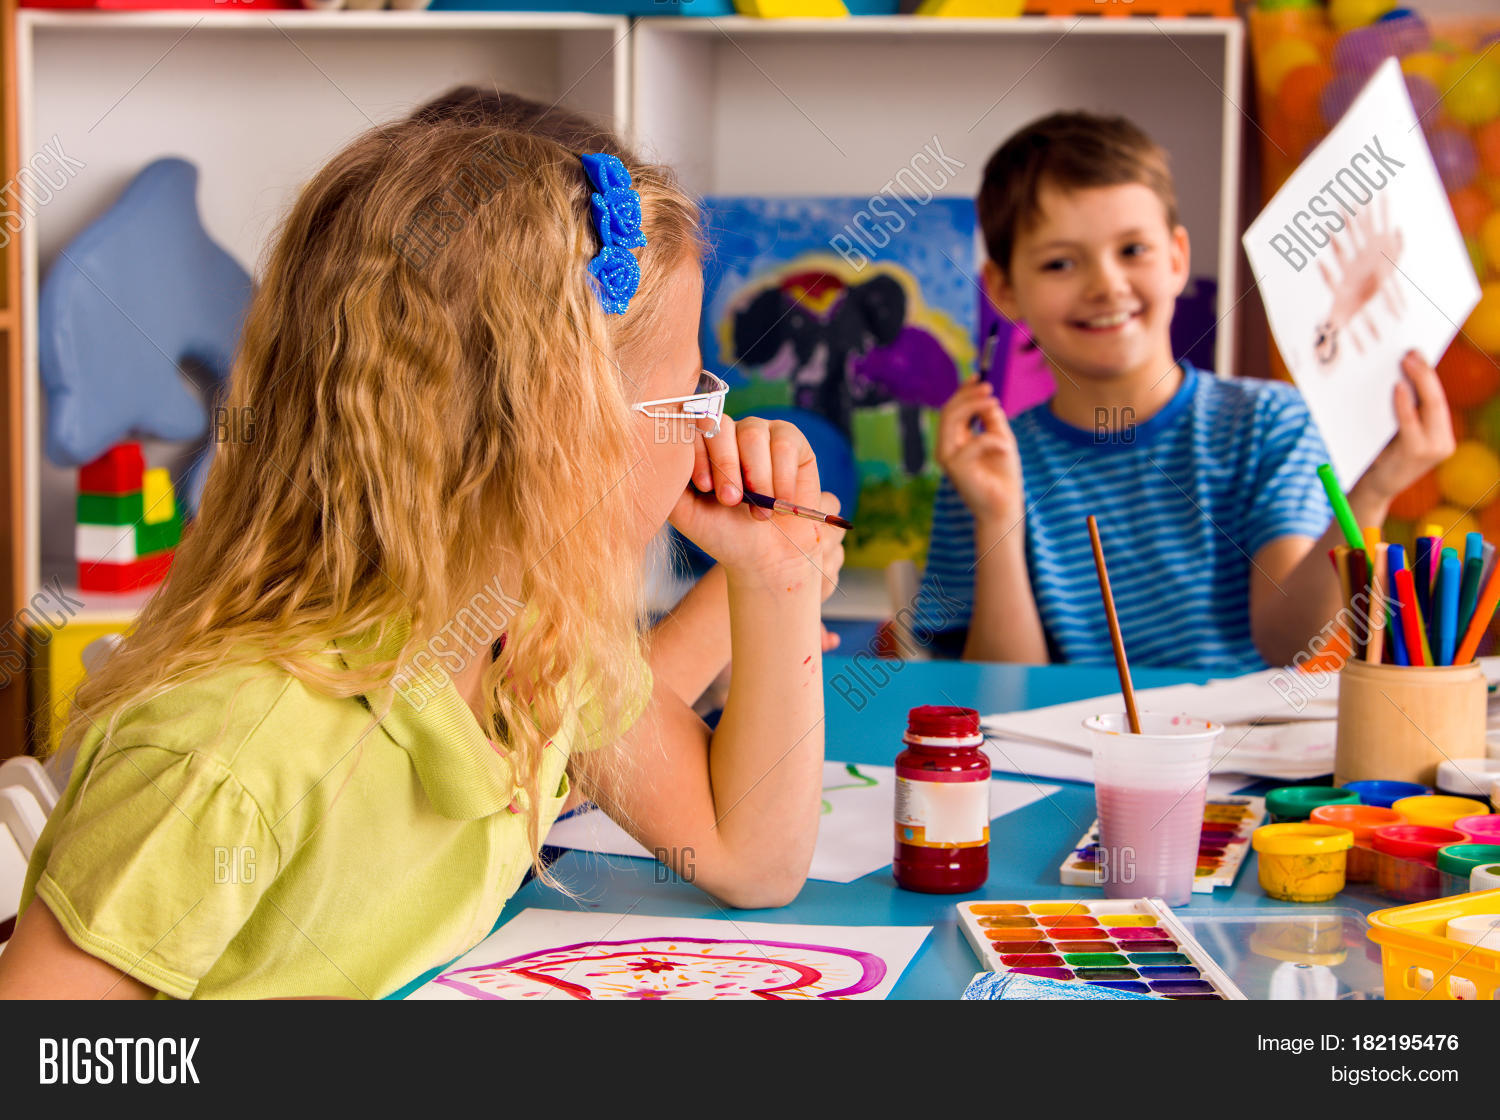 small students boy painting image u0026 photo bigstock